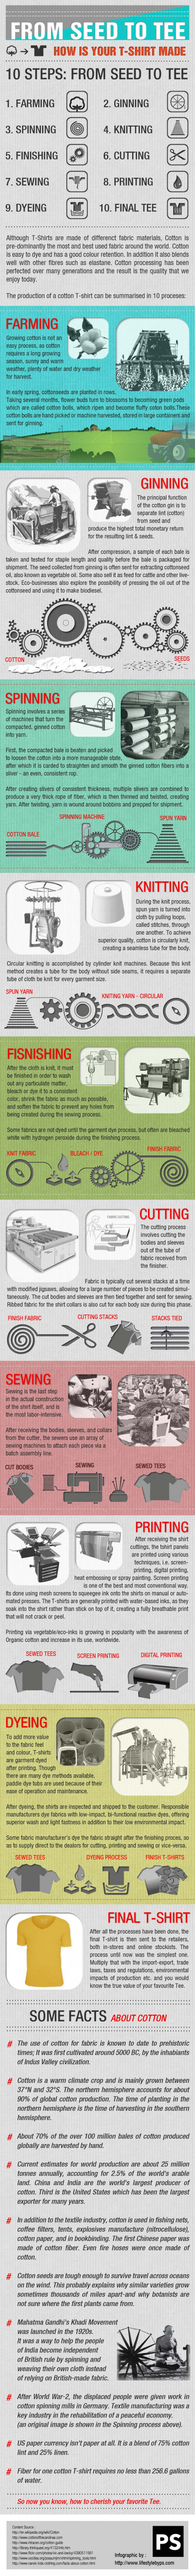 From Seed to Tee - How is your T-shirt made. Infographic